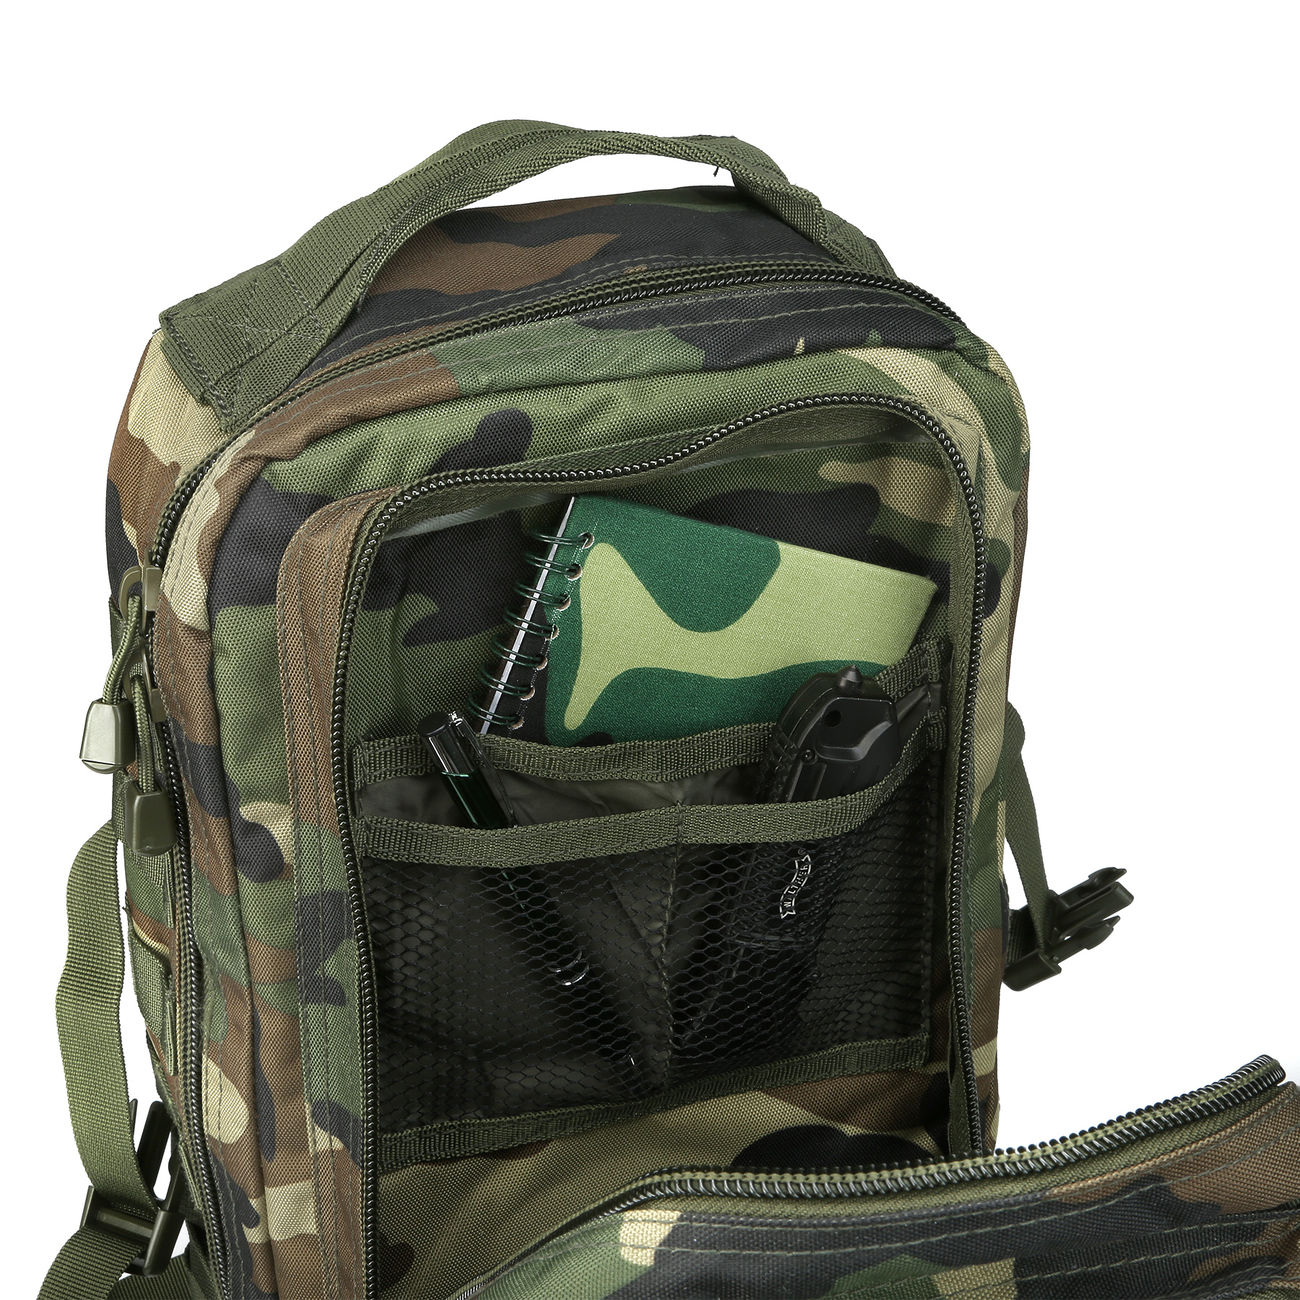 Mil-Tec Rucksack US Assault Pack I 20 Liter woodland 7